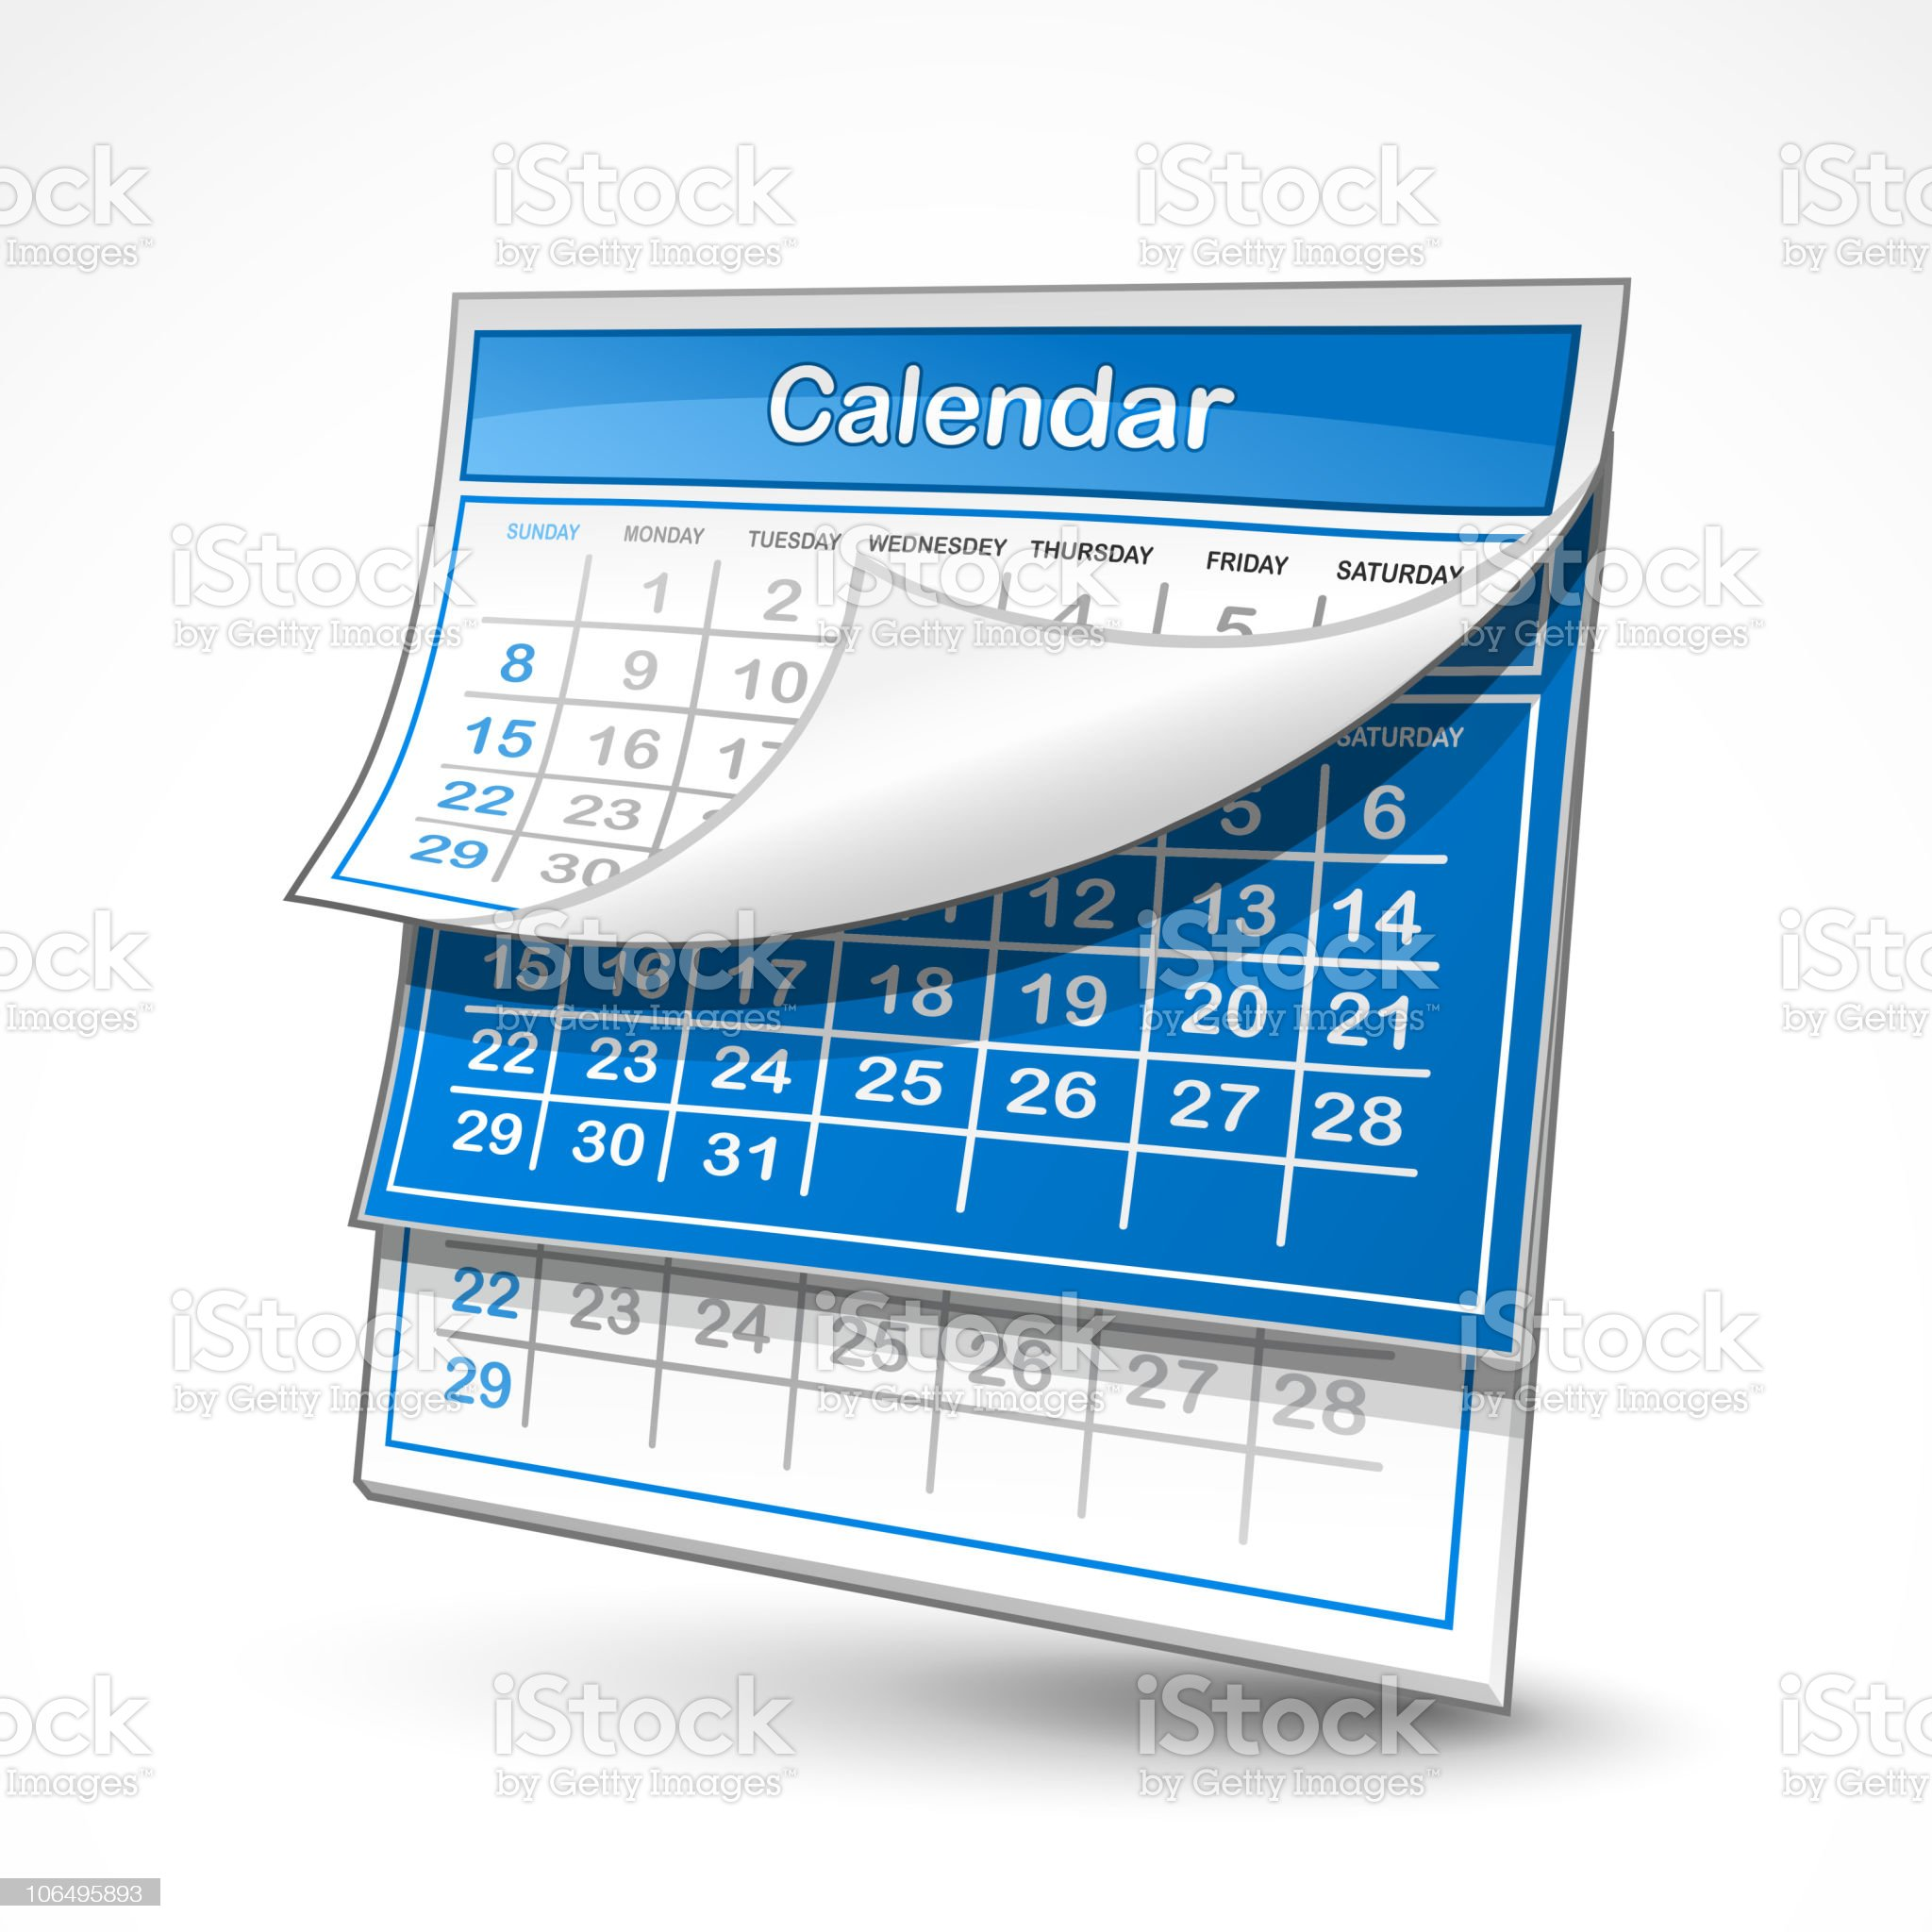 A blue and white wall calendar royalty-free stock vector art